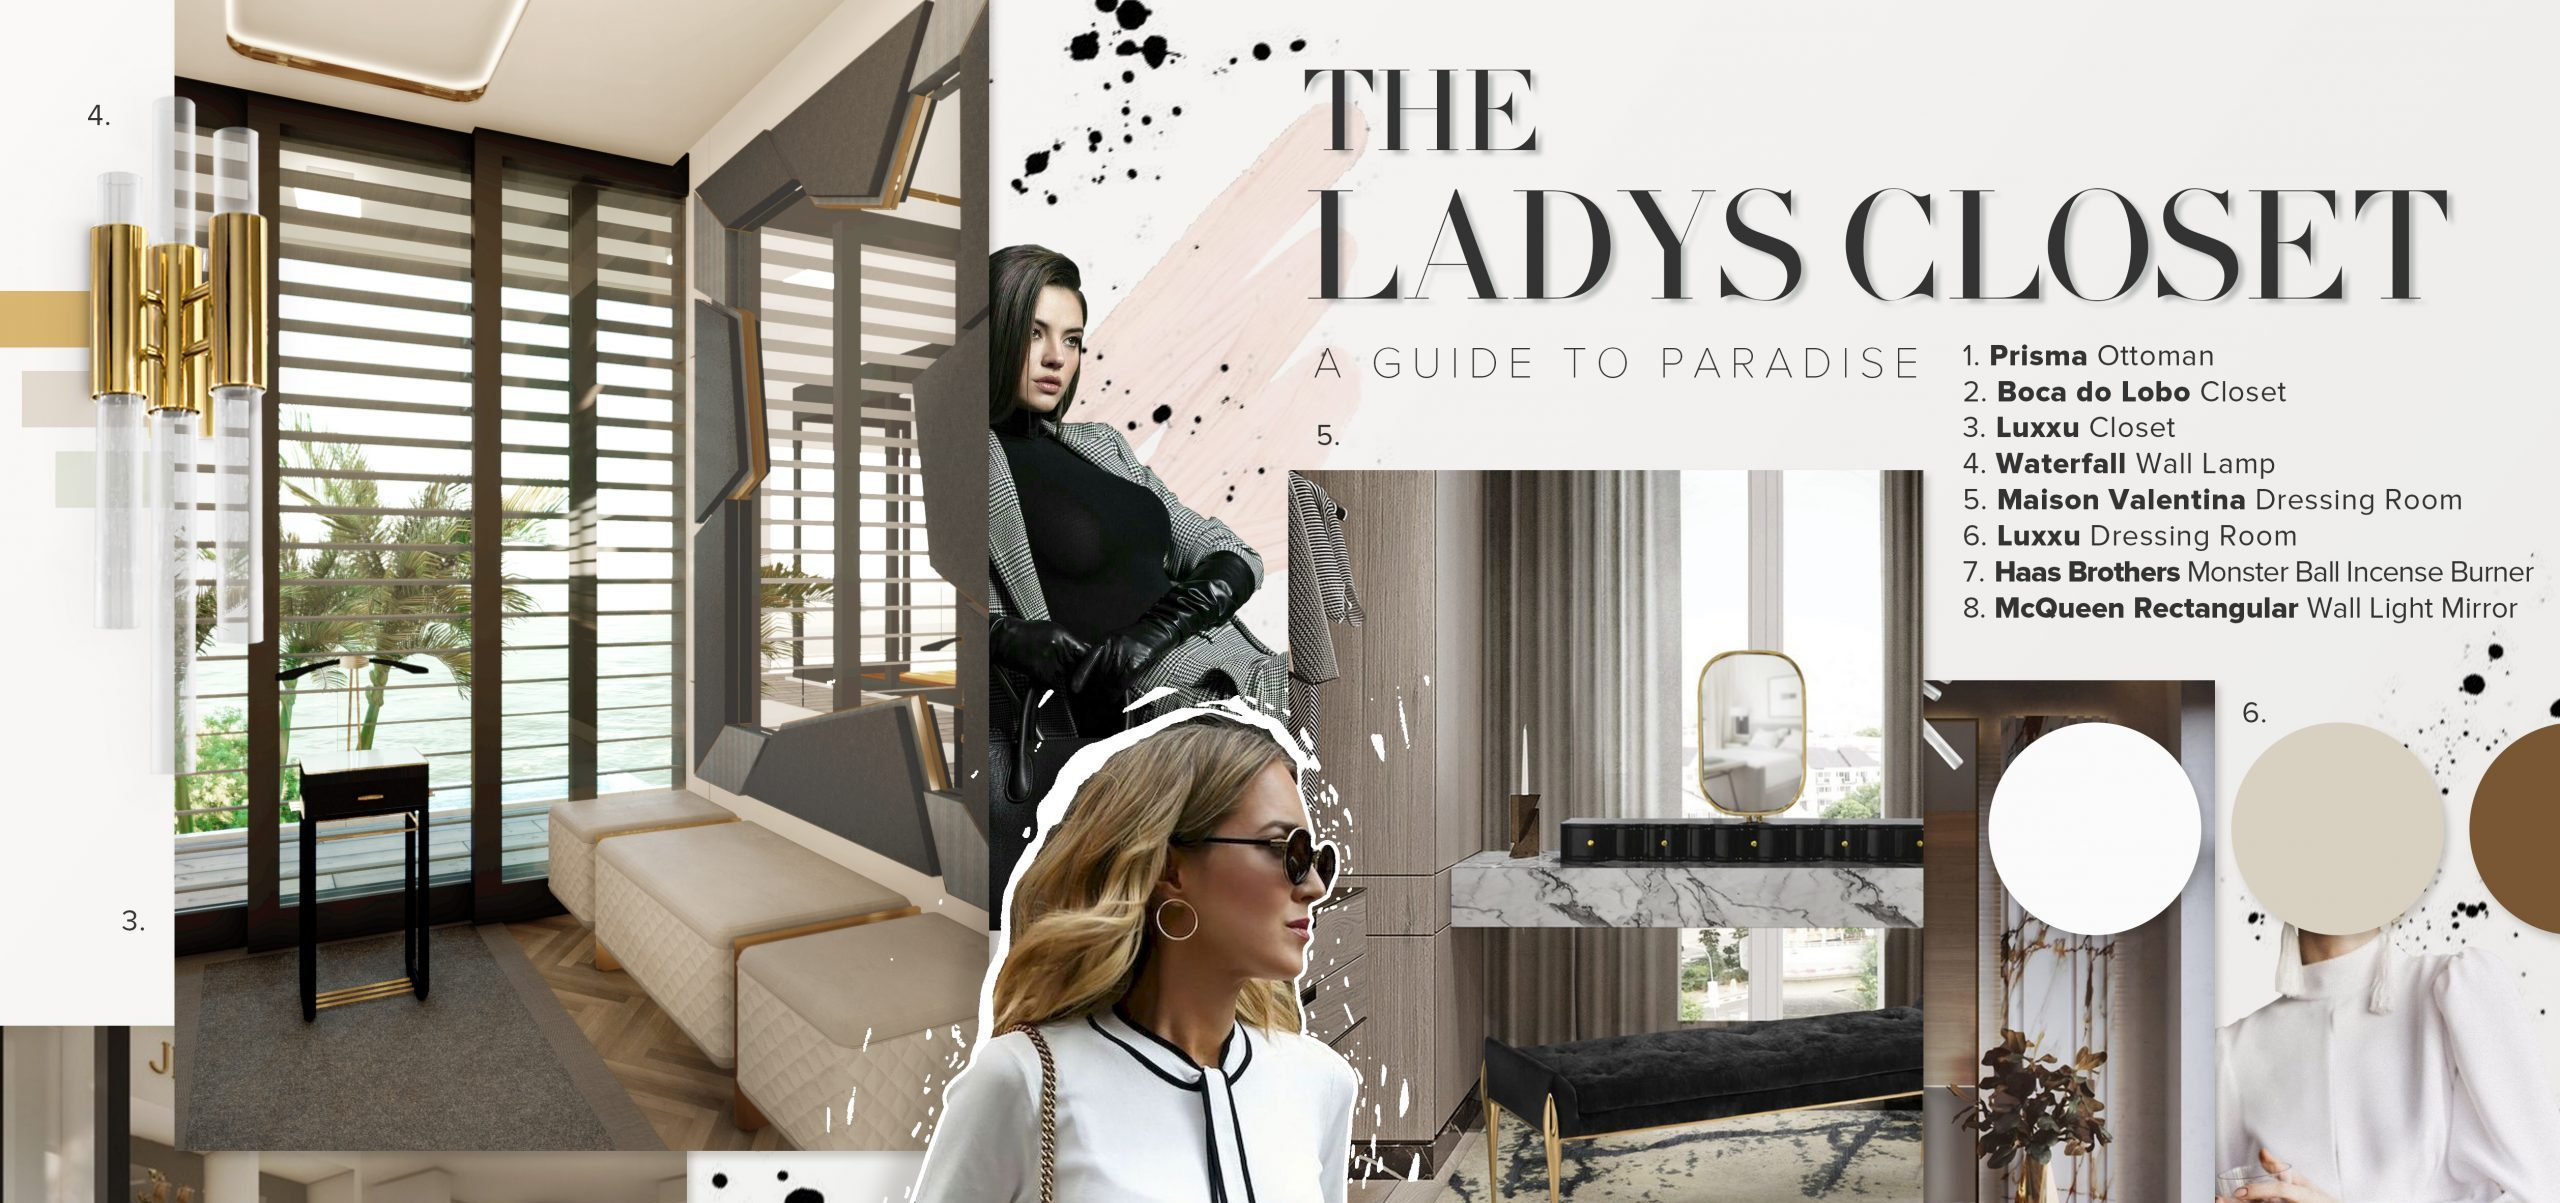 Lady's Closet - A Guide to Paradise